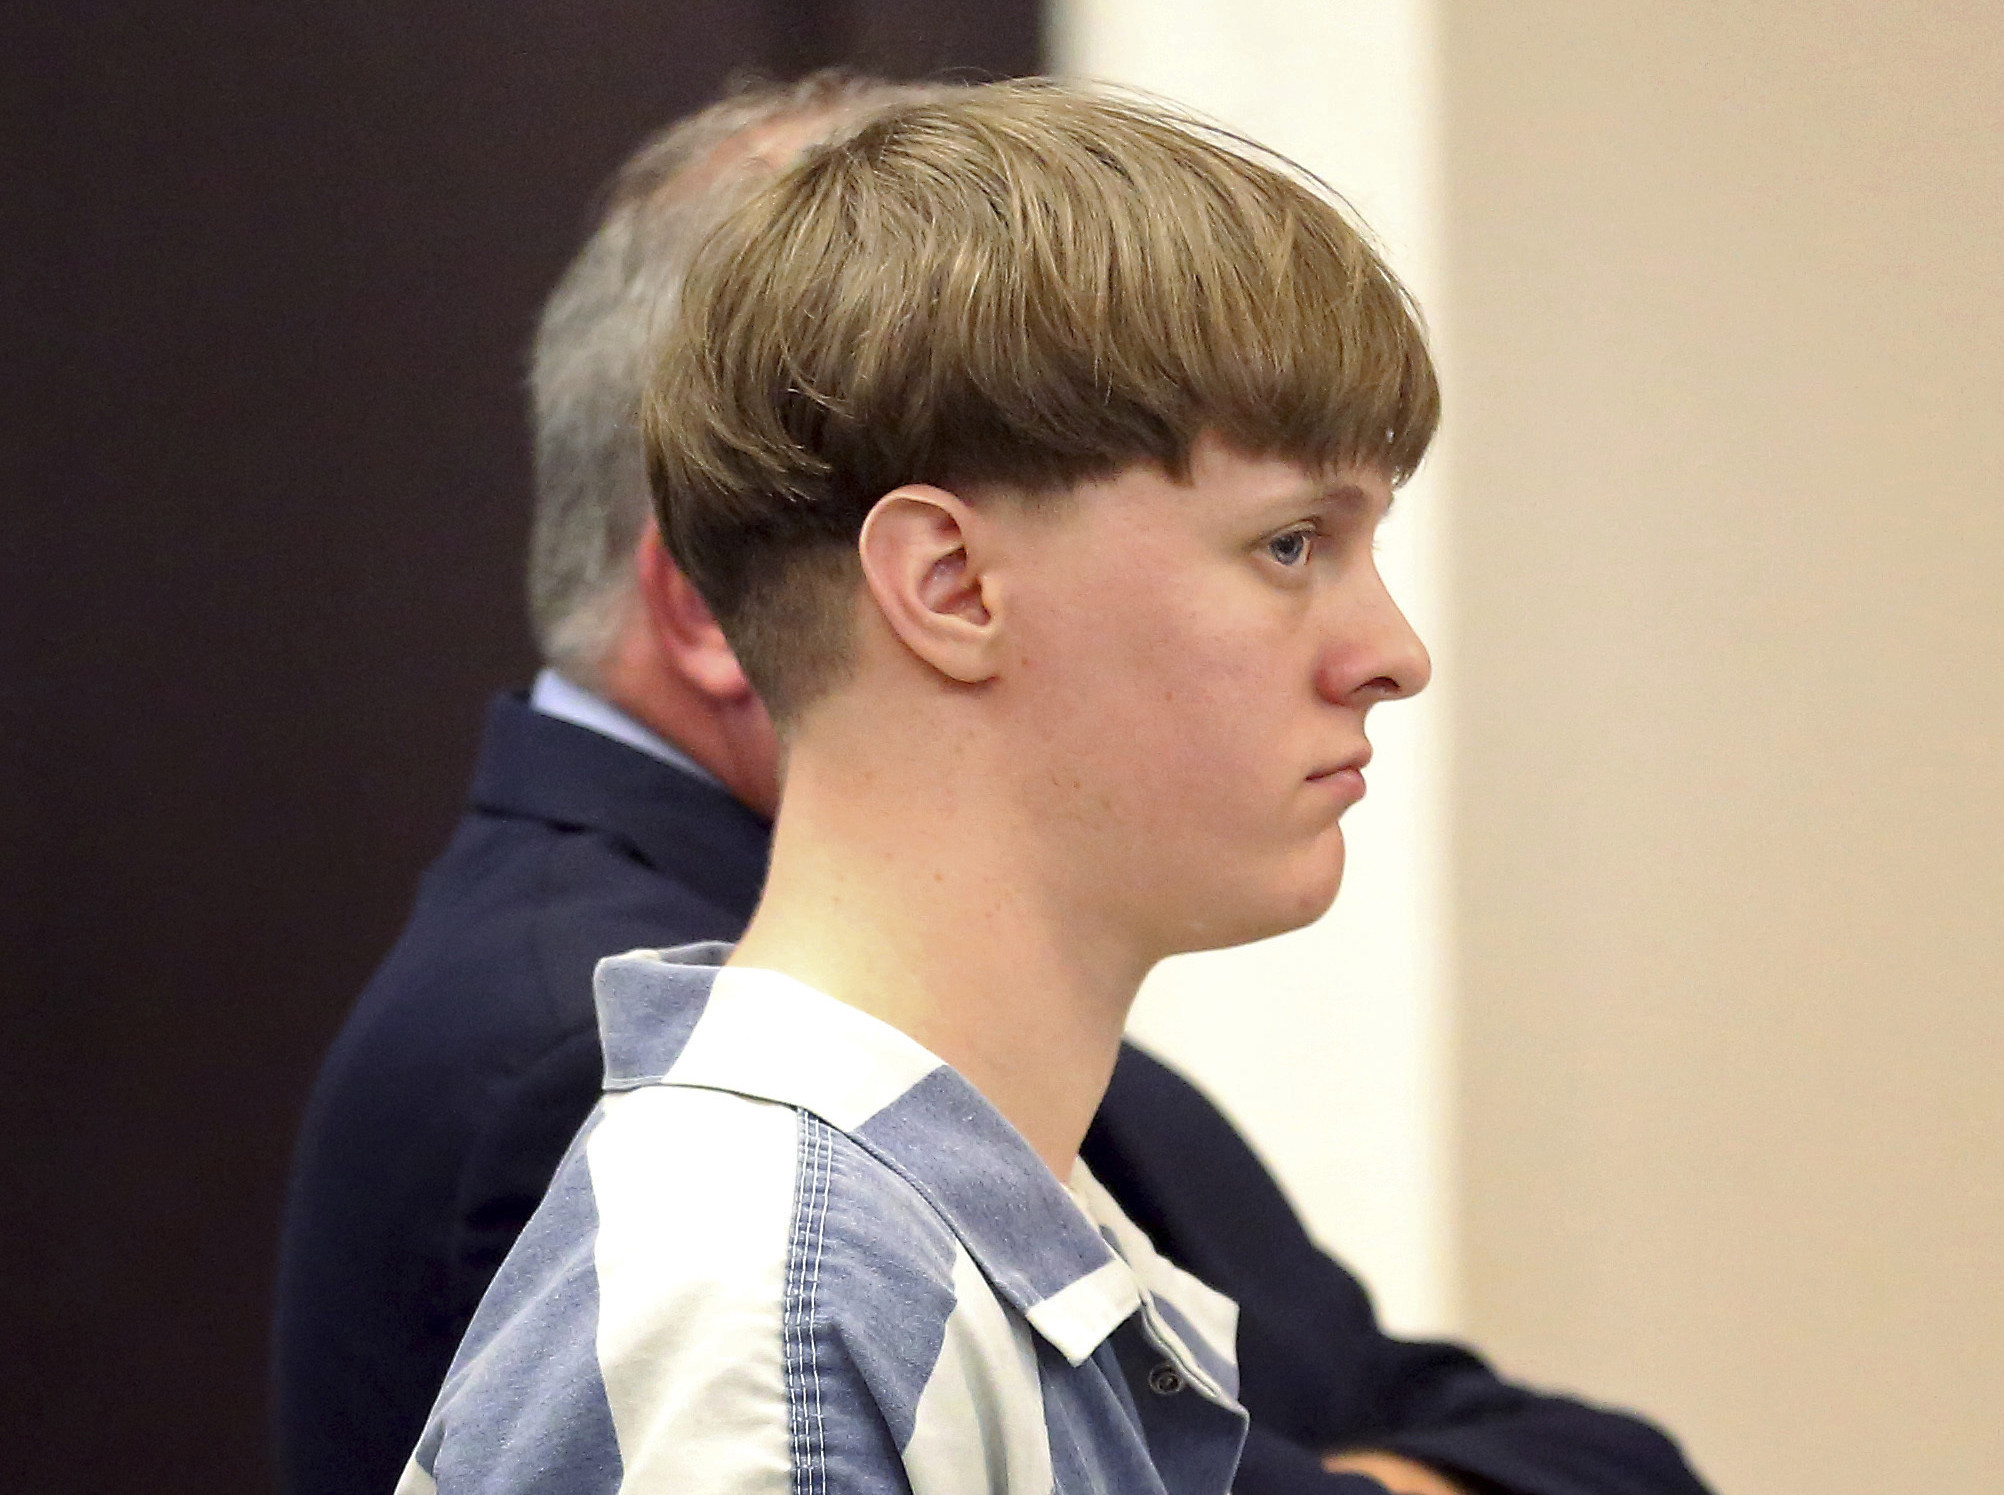 Dylann Roof Told Judge He Would Rather Die Than Be Labeled